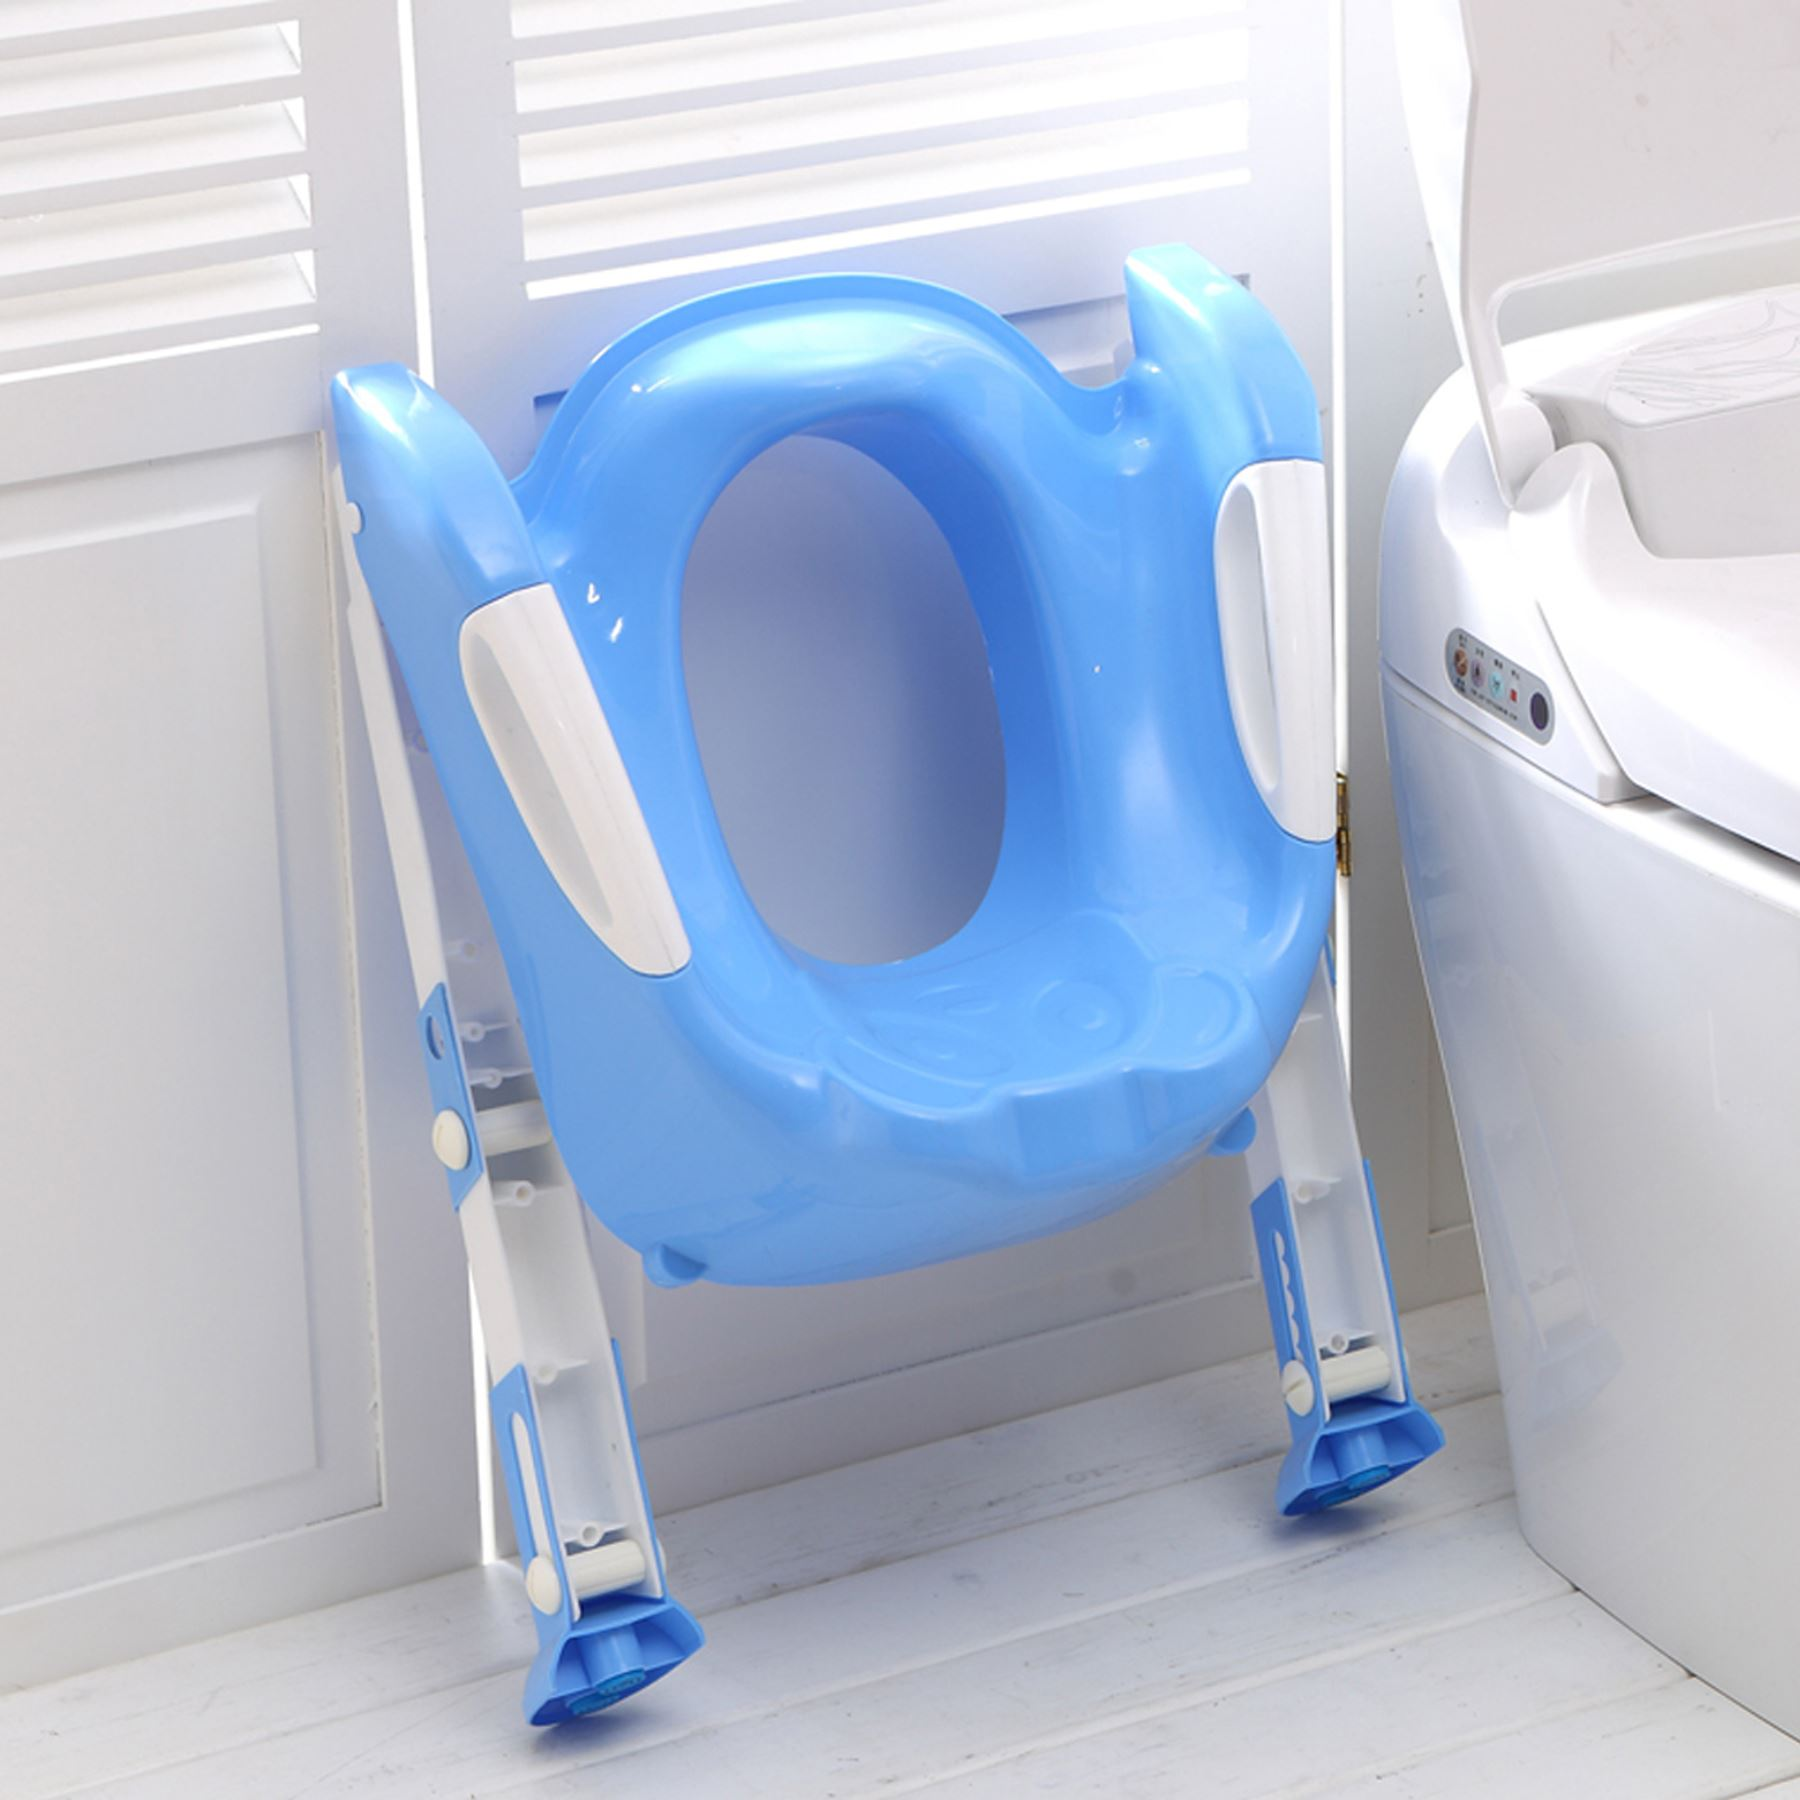 Baby Toddler Toilet Training Potty Seat 2 Step Ladder Toilet Trainer For Child Ebay - Potty Toilet